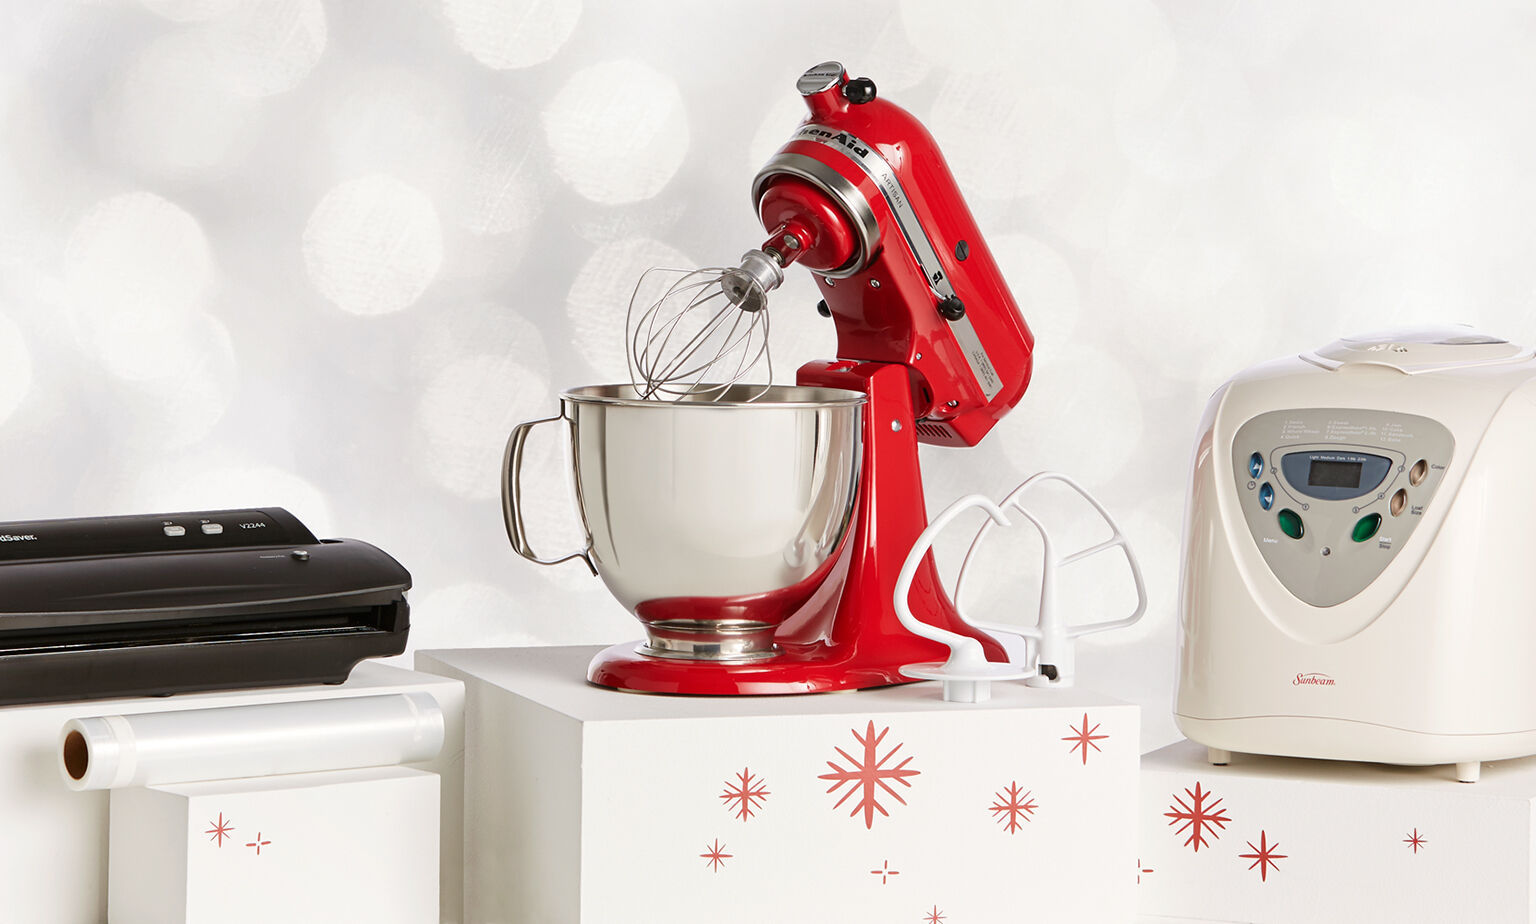 Kitchen Electrics Up to 60% Off